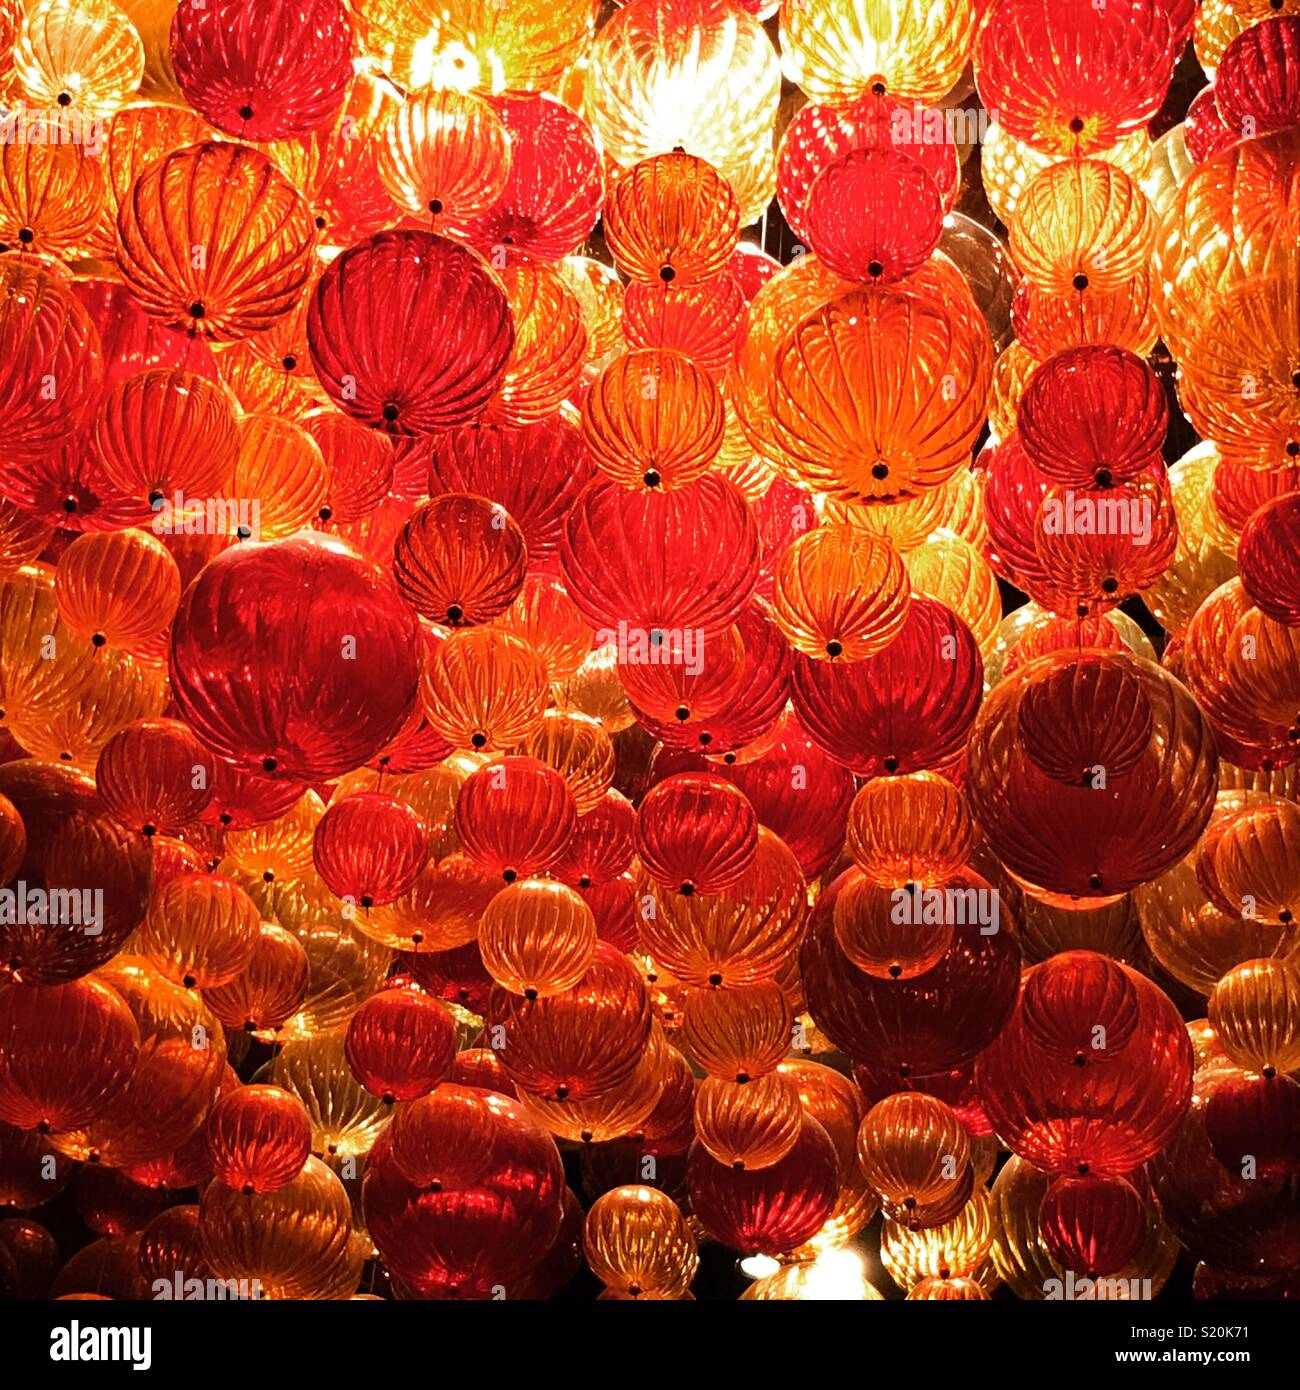 Glass ceiling - Stock Image